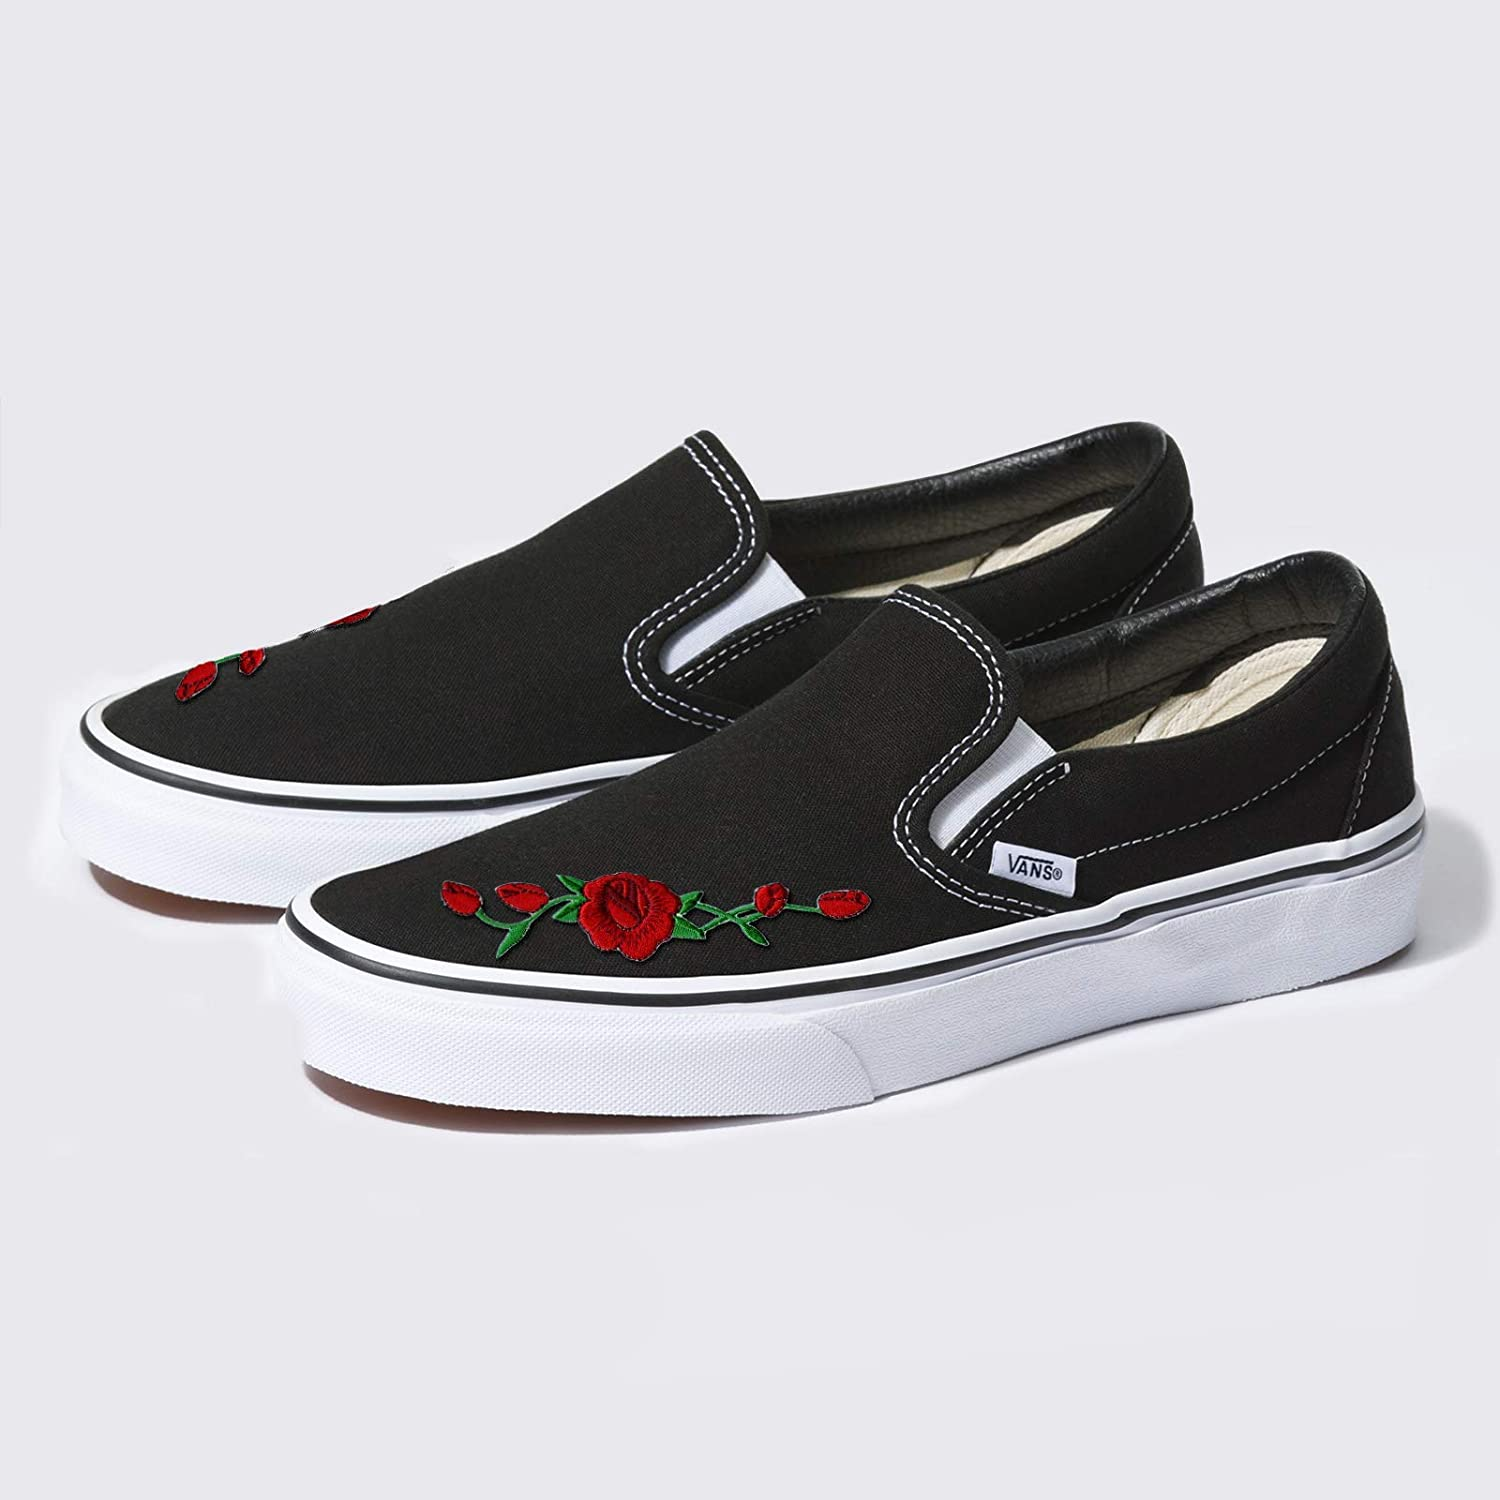 choose original nice cheap quality products Amazon.com: Custom Black Slip-On Vans Embroidered Red Rose ...